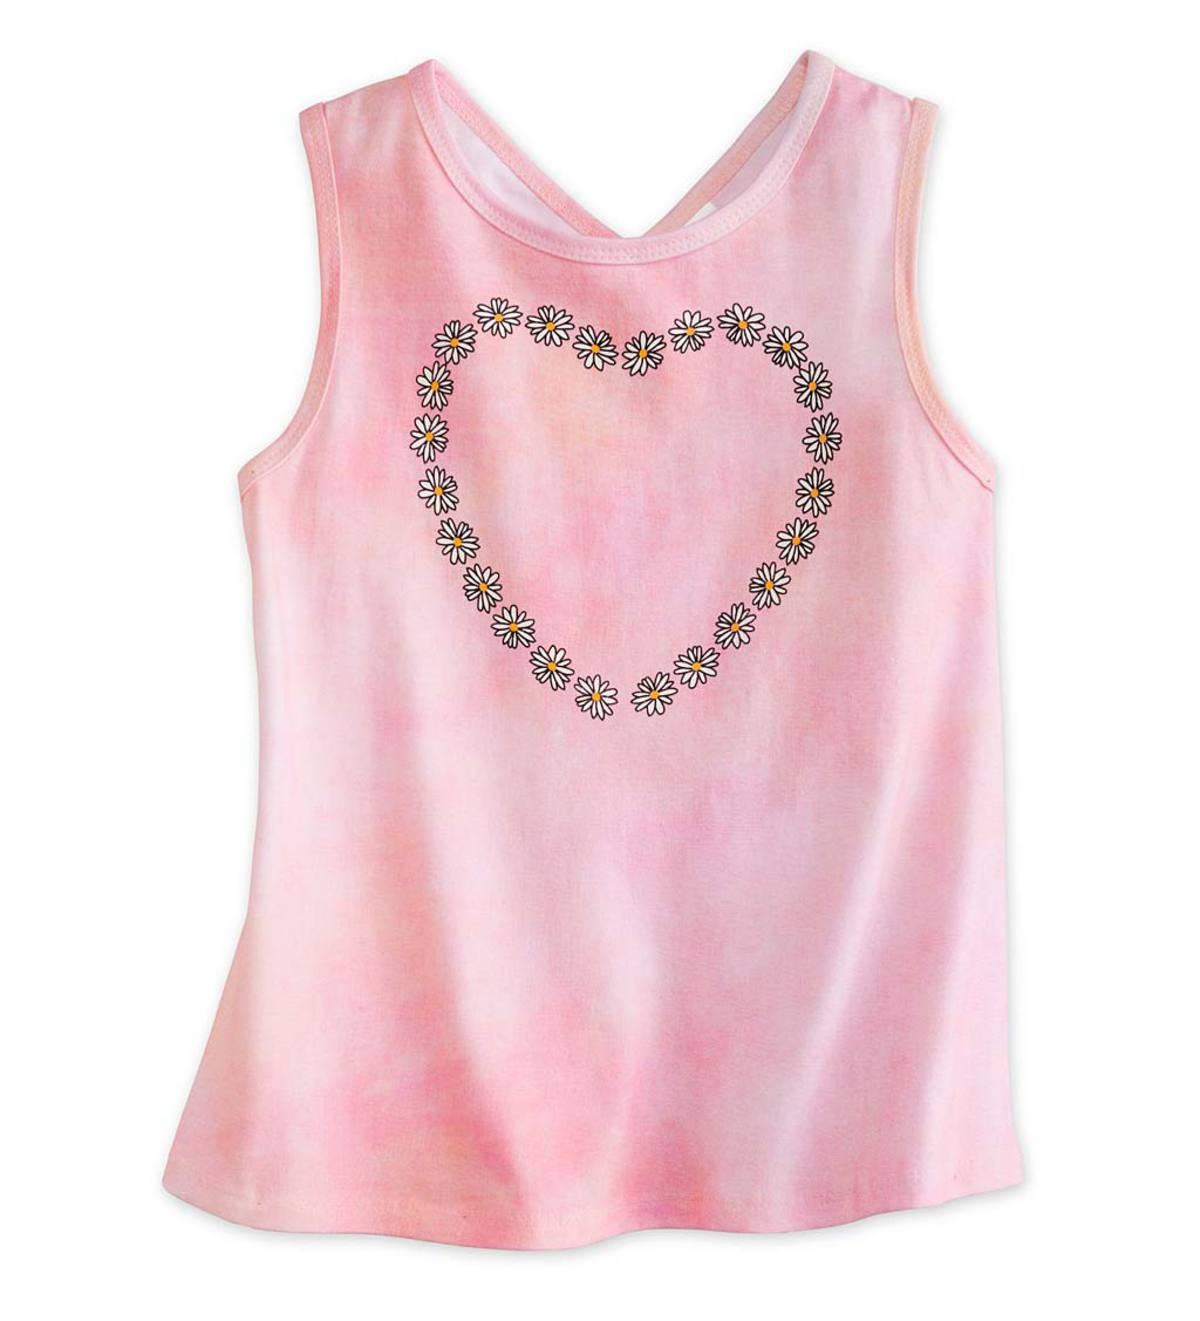 Daisy Heart Tee - Peach - 7/8